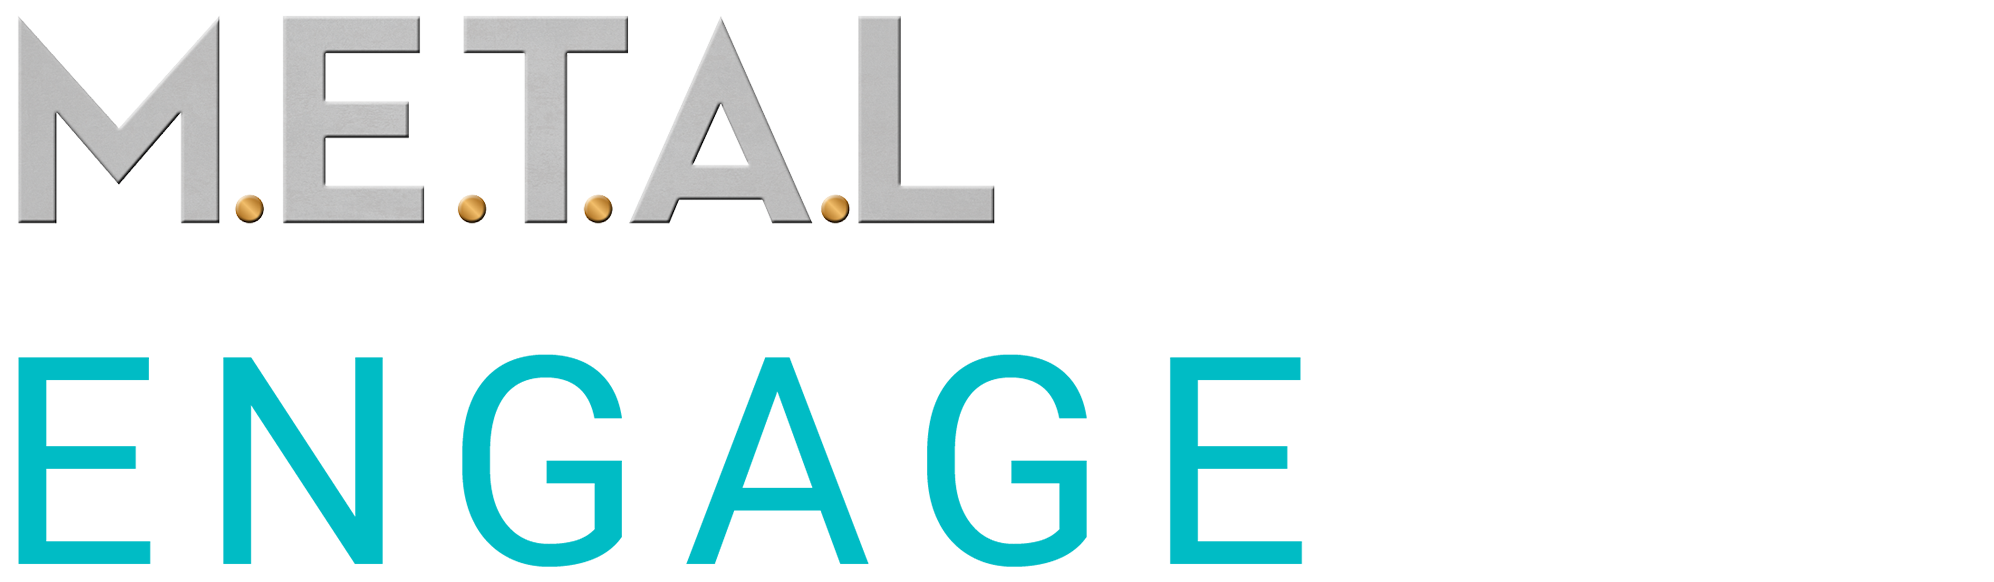 METAL Category - Engage - Light